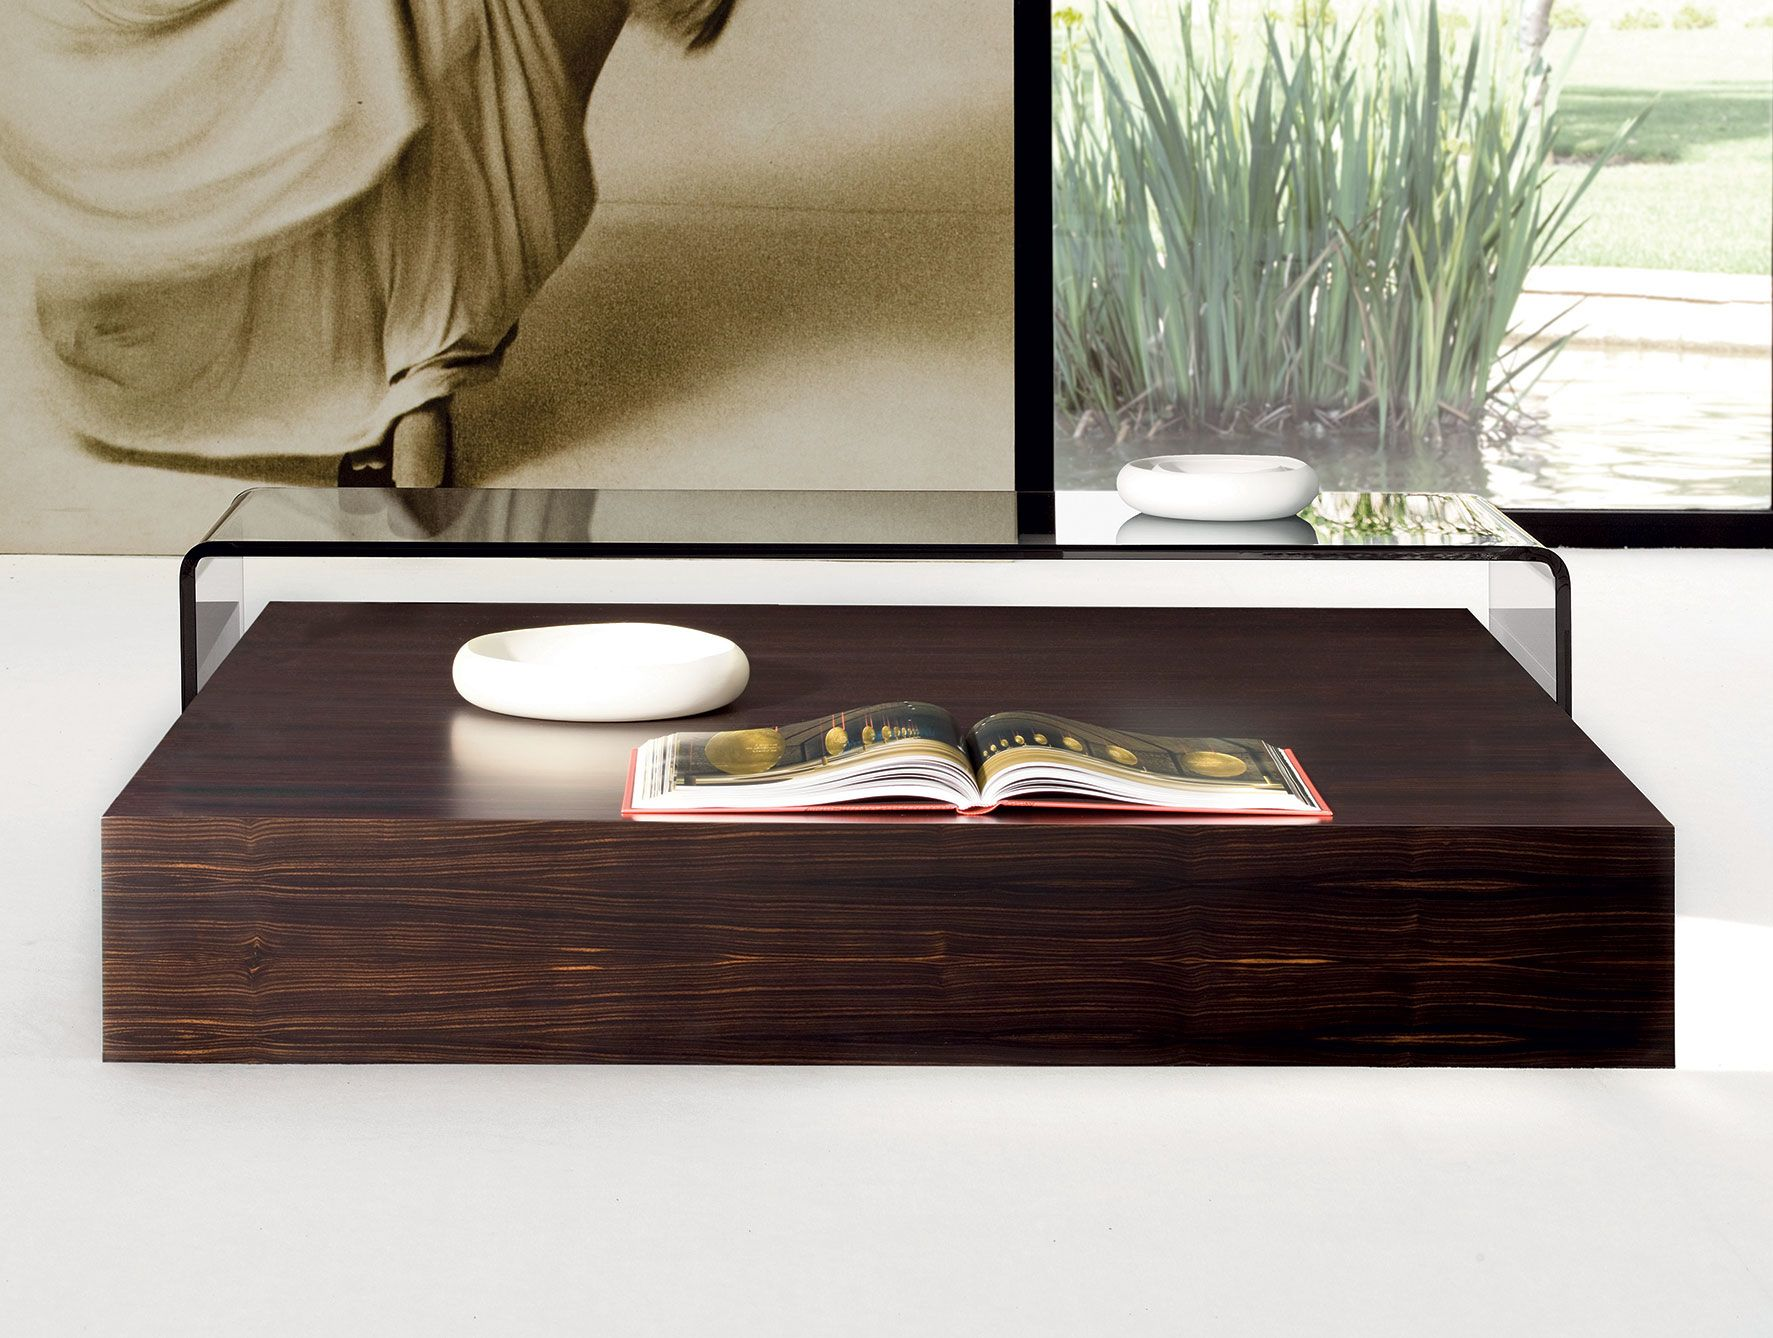 Pat Norma Italian Designer Composed Of Two Handmade Coffee Tables And Shown In Transparent Glass Handmade Coffee Table Wooden Coffee Table Glass Coffee Table [ 1338 x 1773 Pixel ]